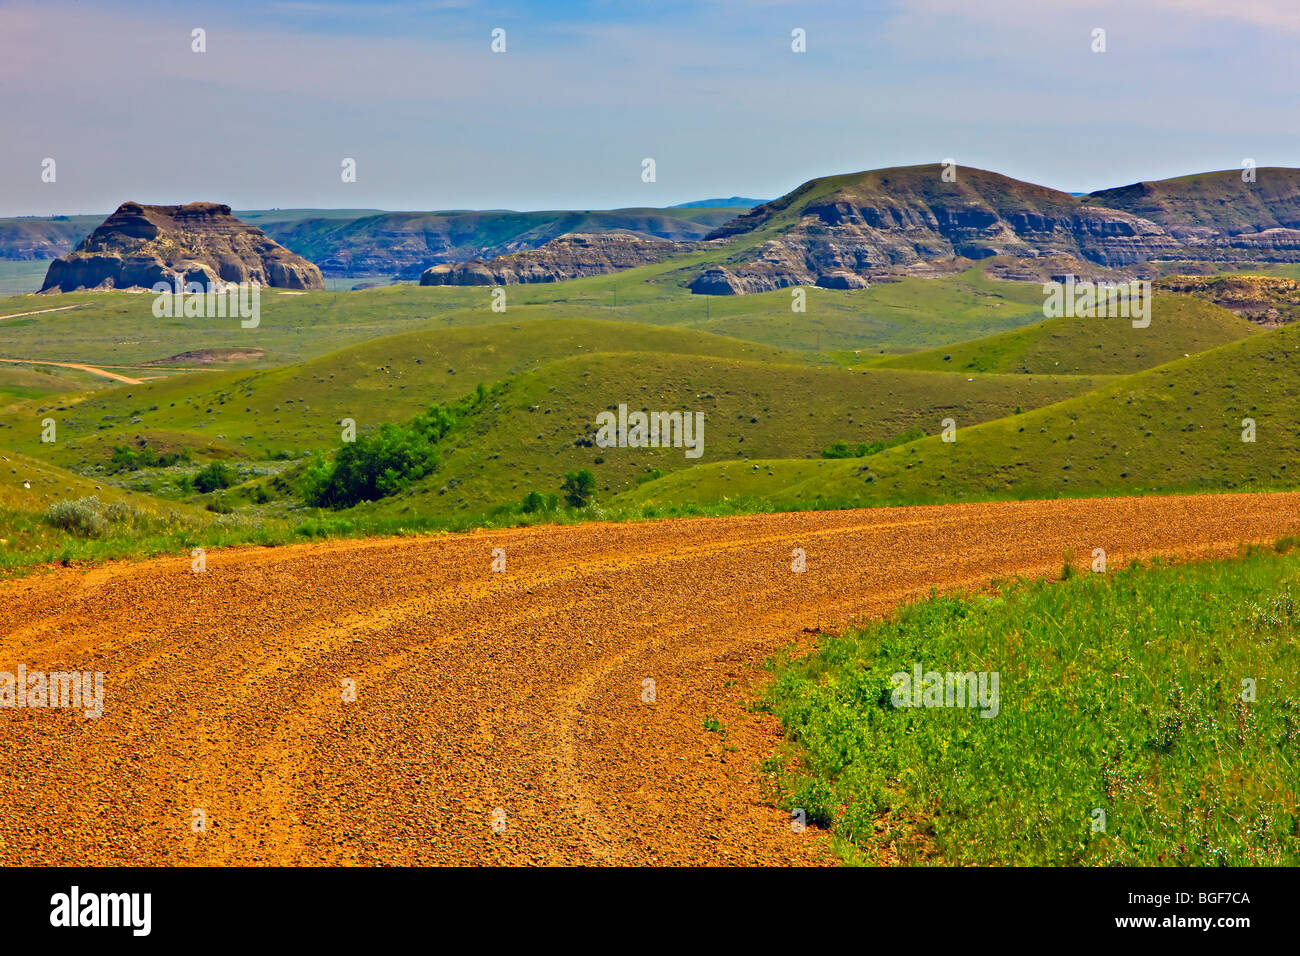 Castle Butte in the Big Muddy Badlands of southern Saskatchewan, Canada. - Stock Image